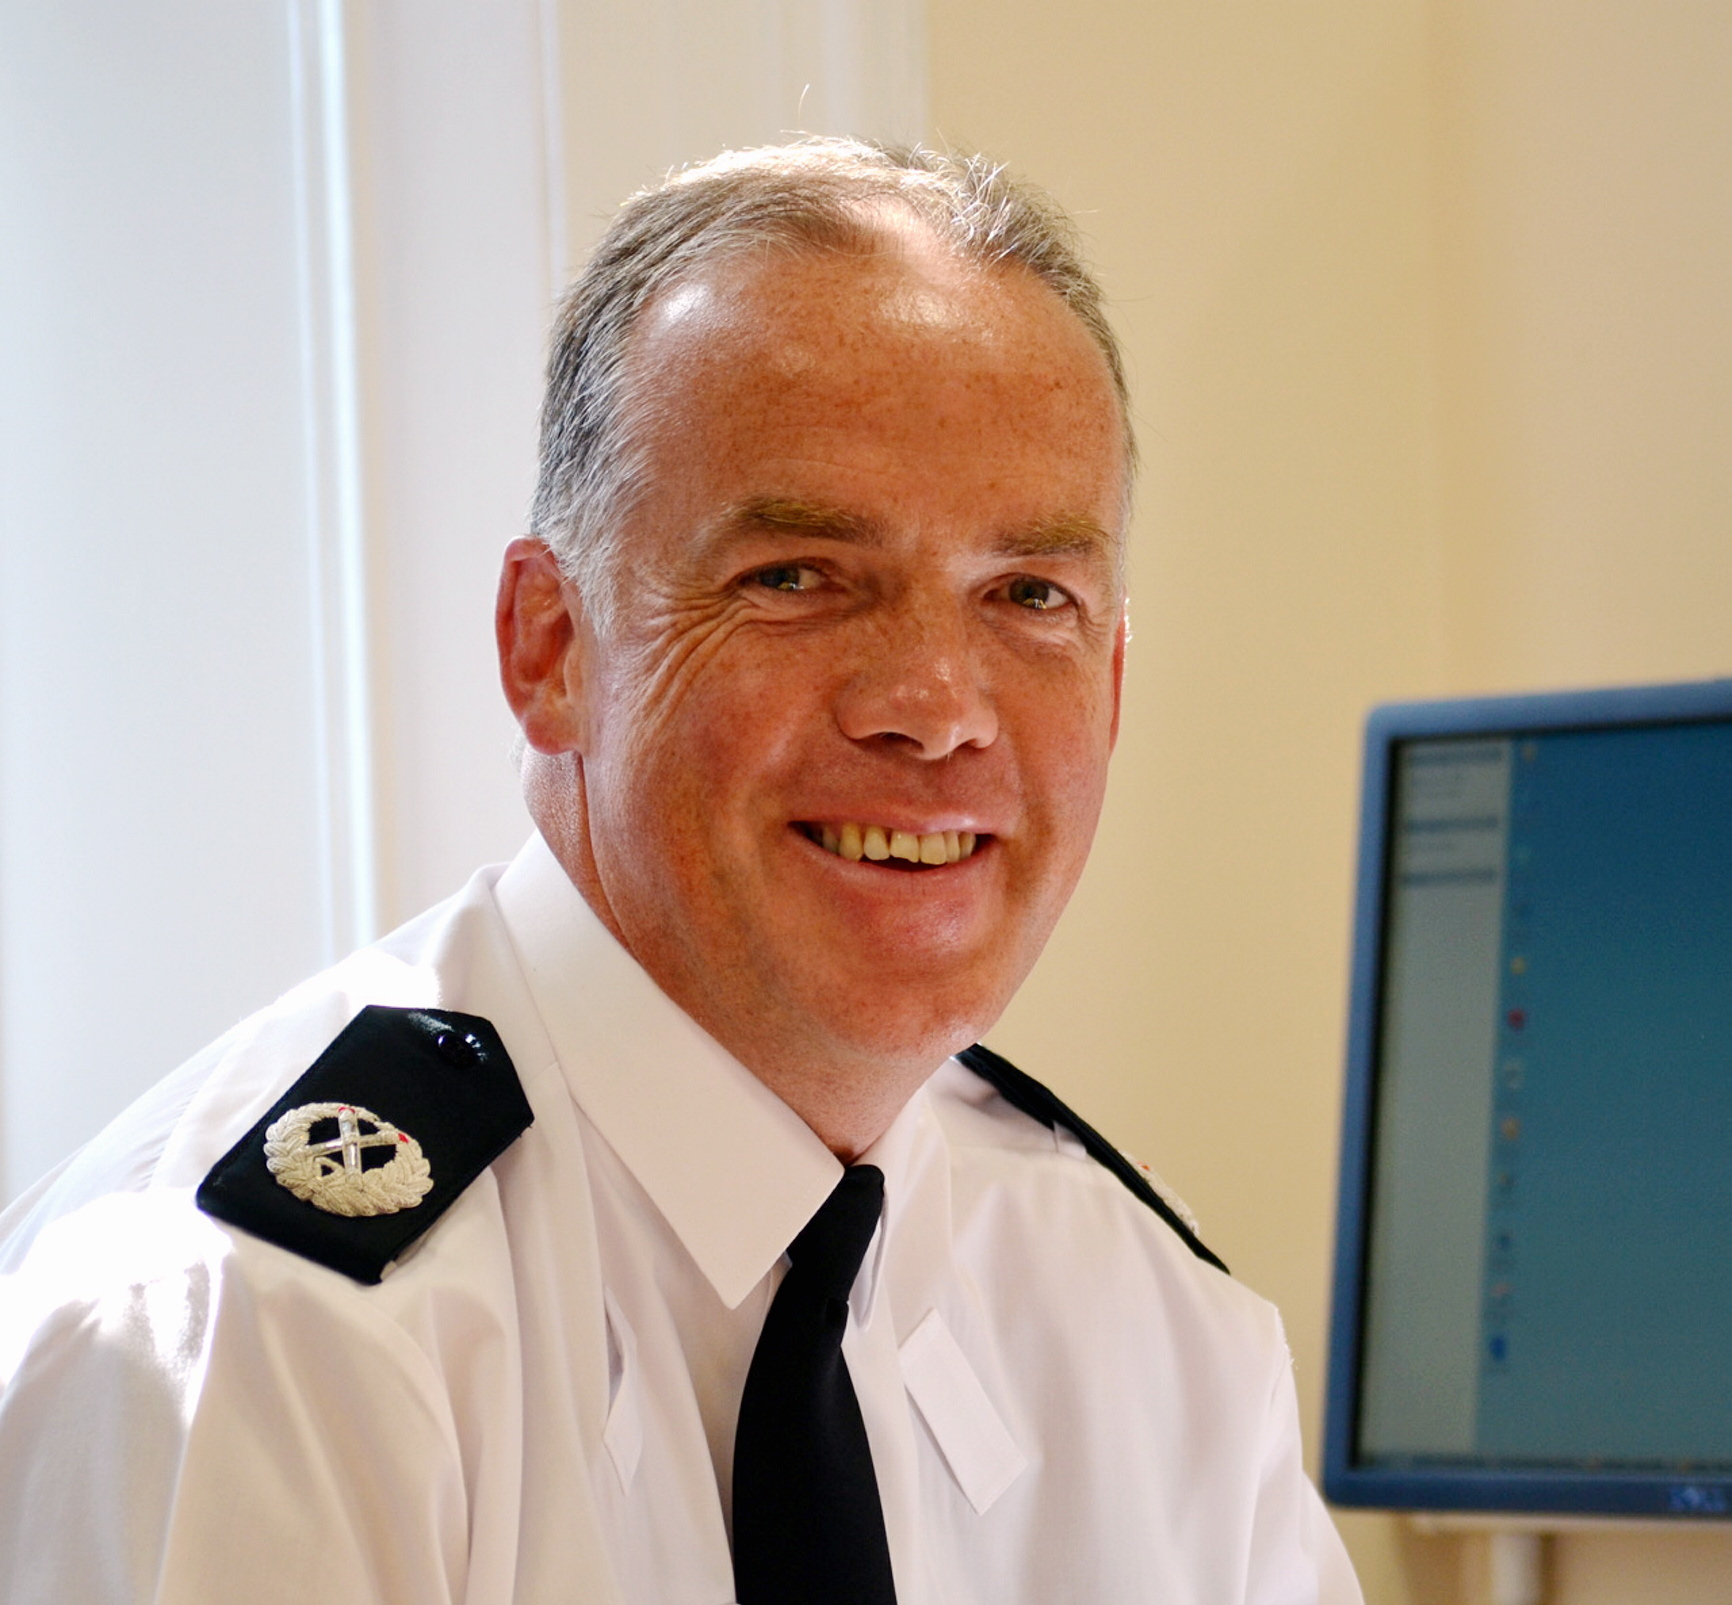 Pic for single by JL  New Assistant Chief Constable Paul Kennedy  (8856860)